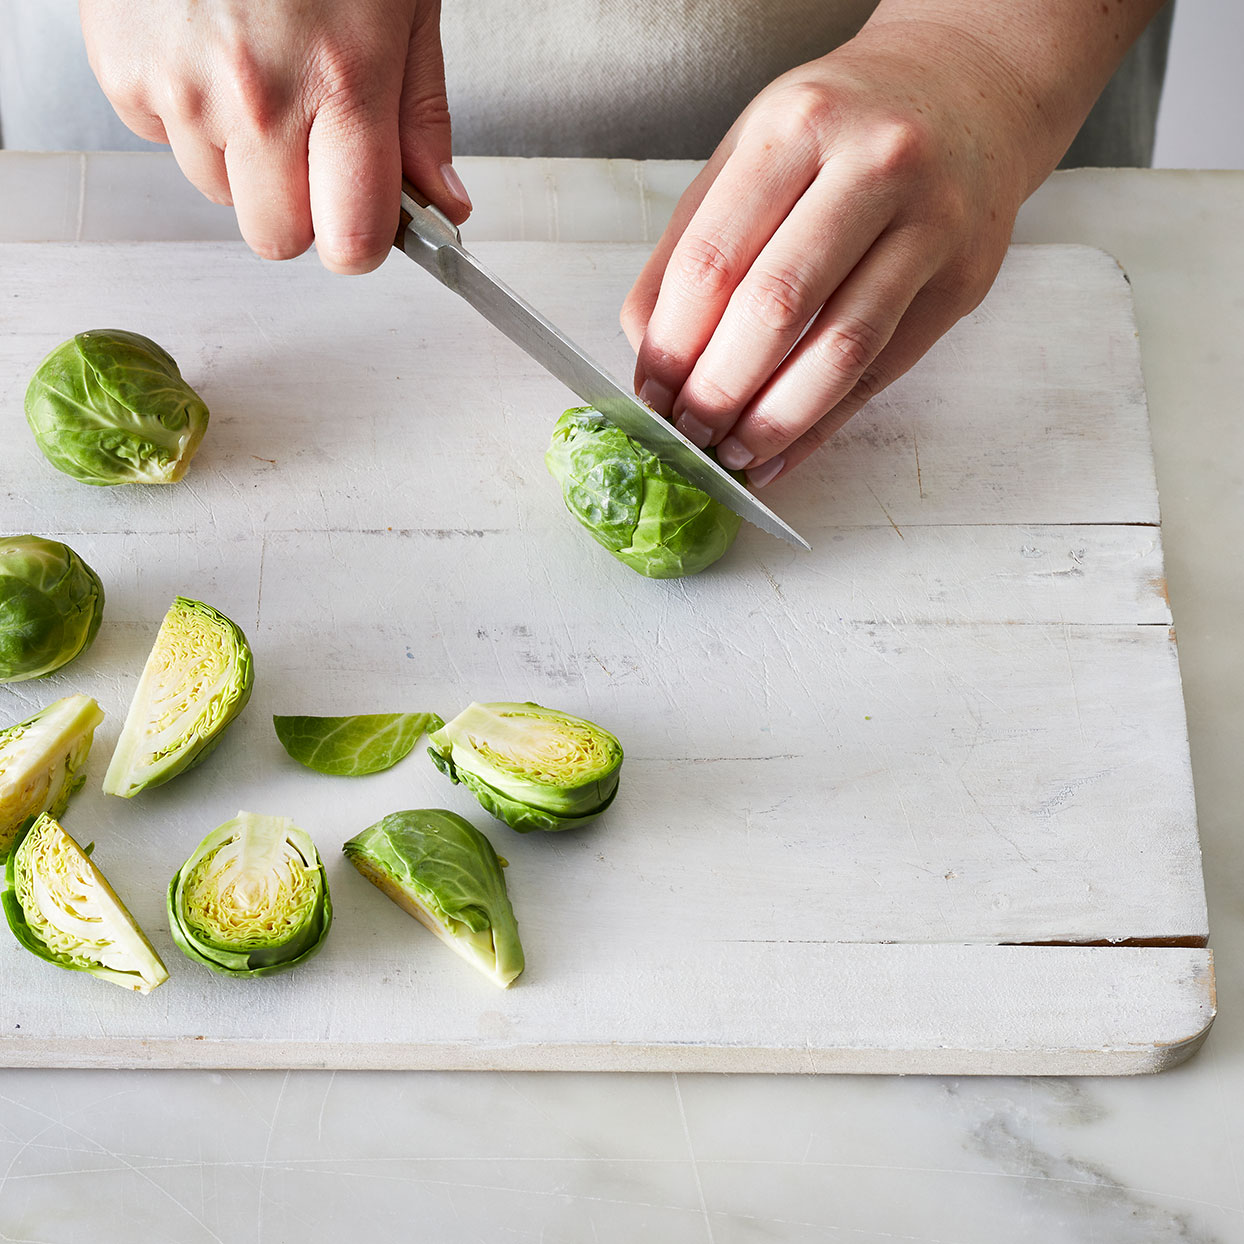 Cutting-Brussels-sprouts